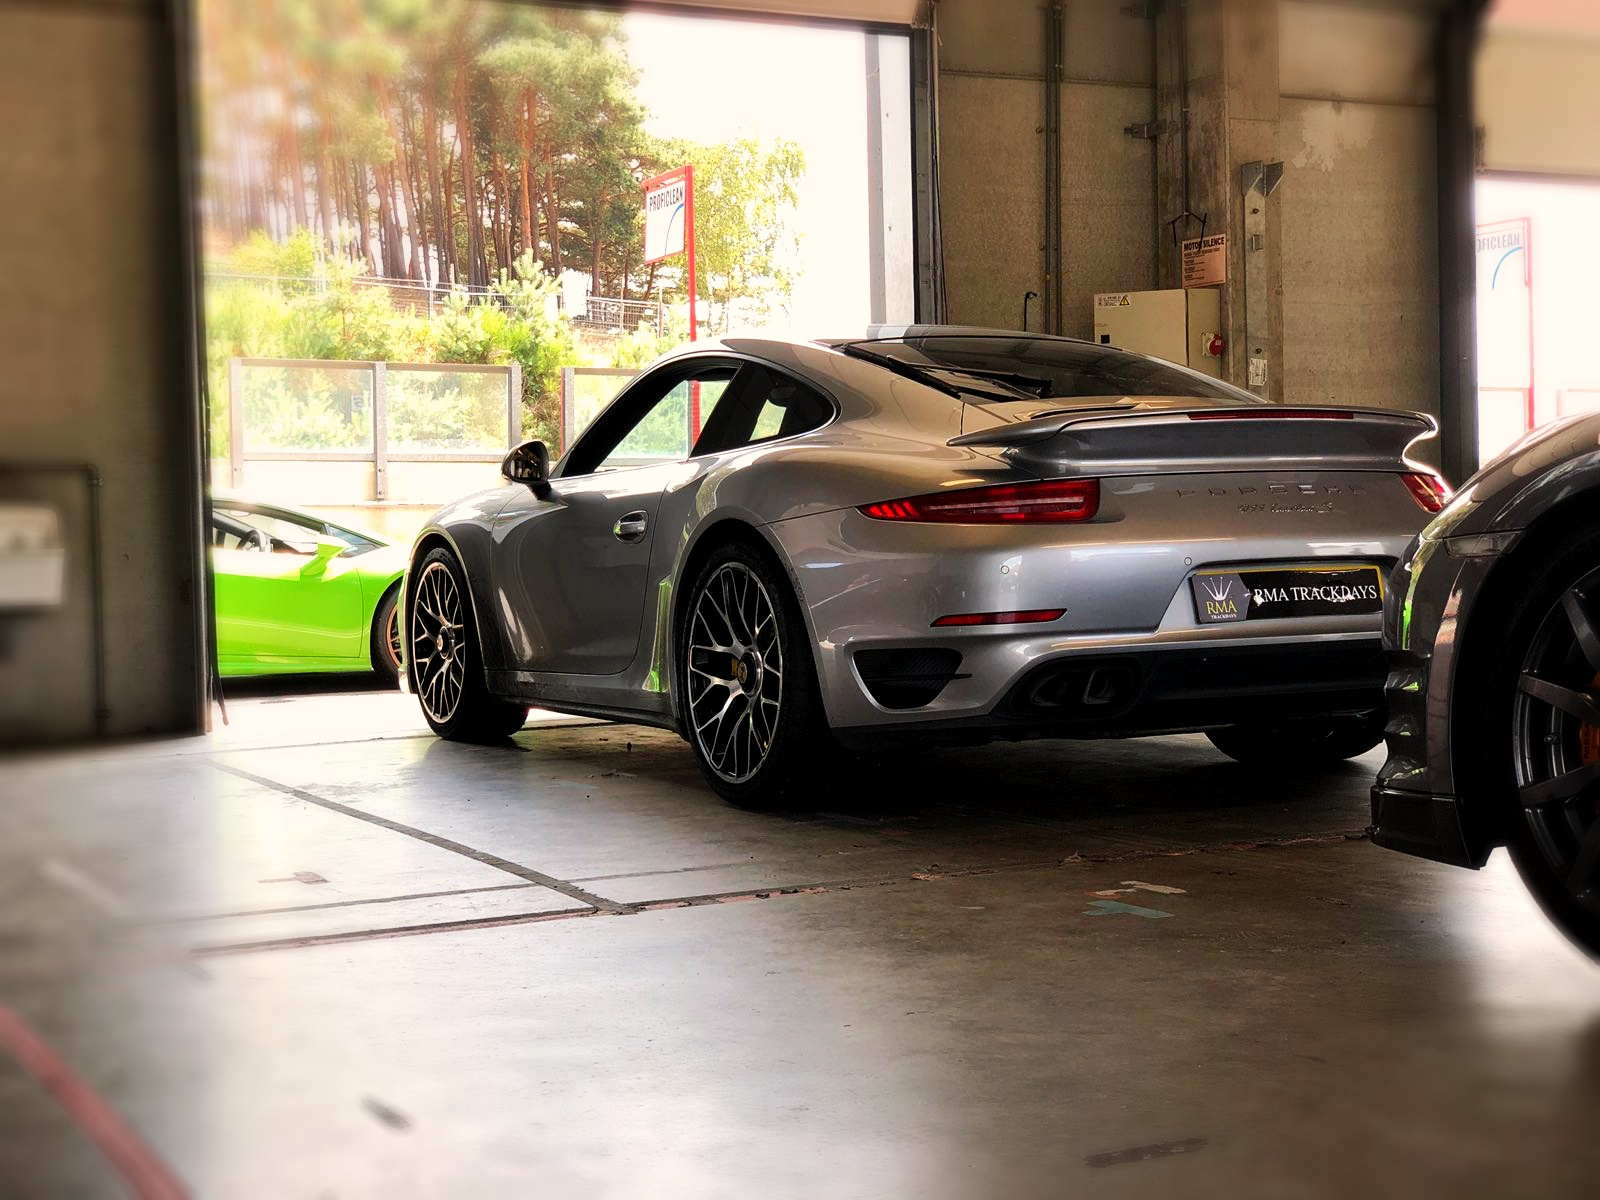 911 weapon